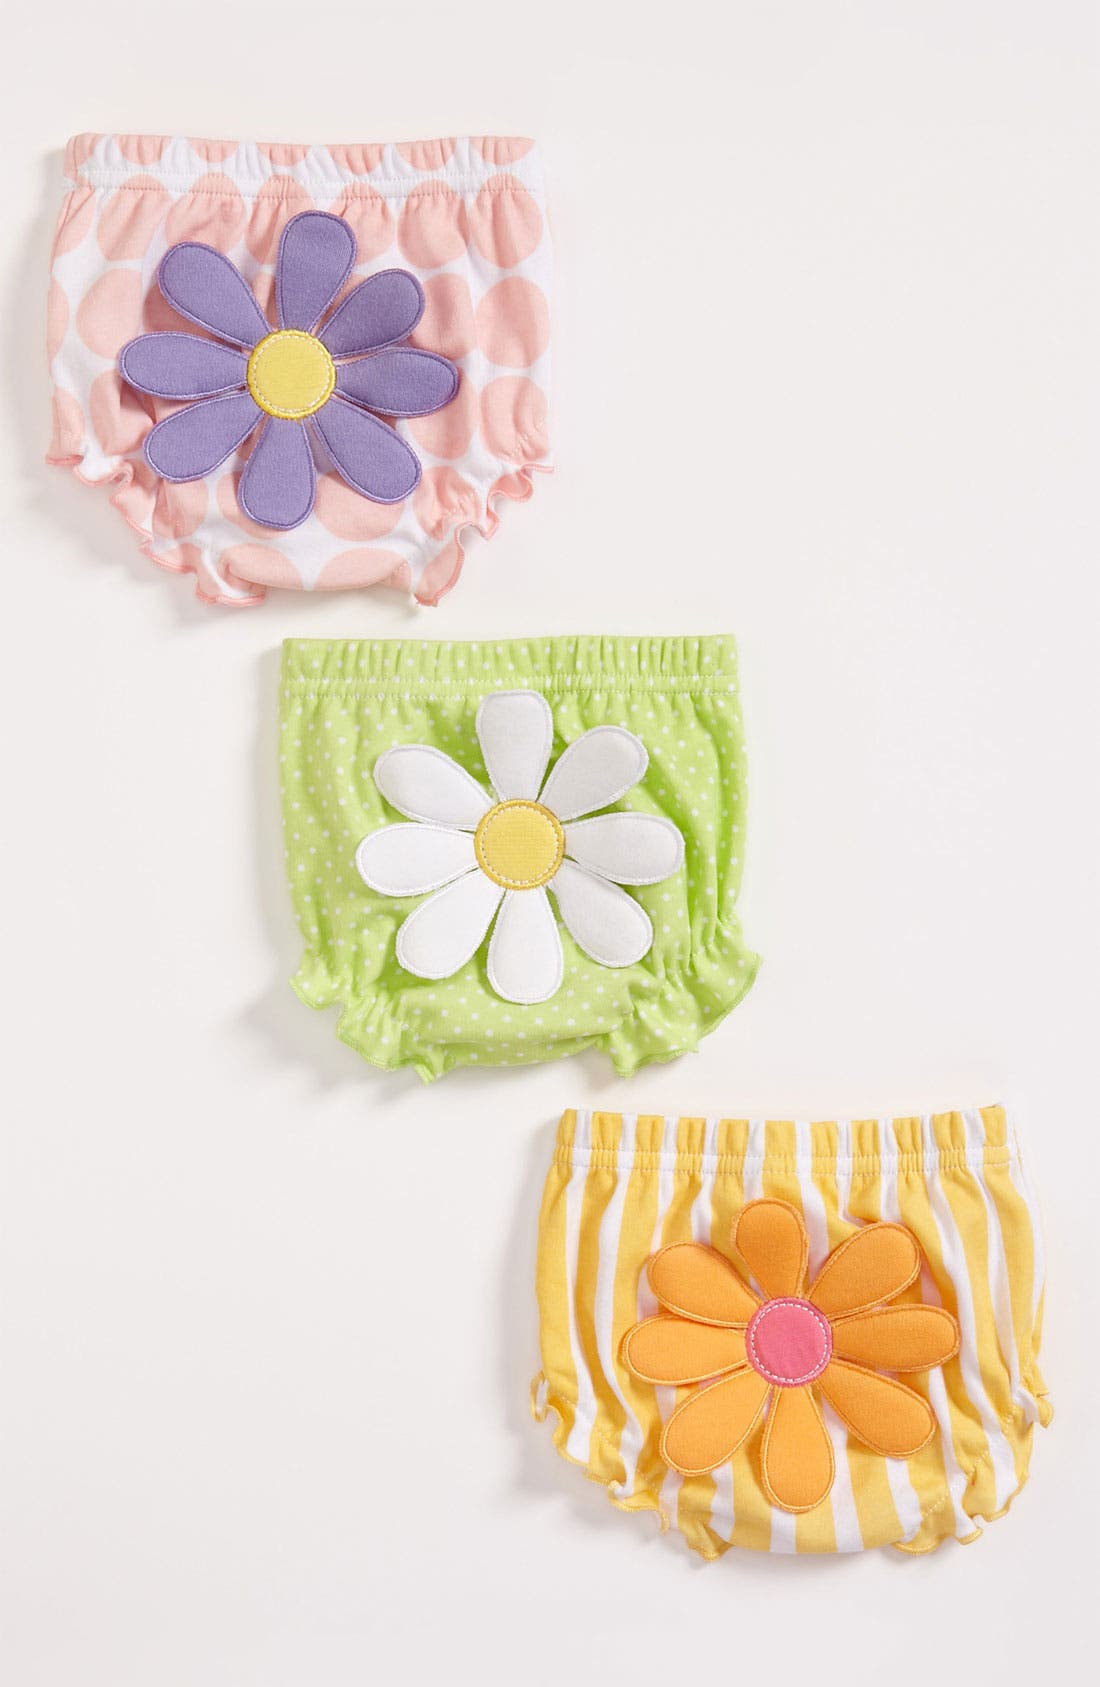 Alternate Image 1 Selected - Baby Aspen 'Bunch O' Bloomers' Diaper Covers (3-Pack) (Baby)